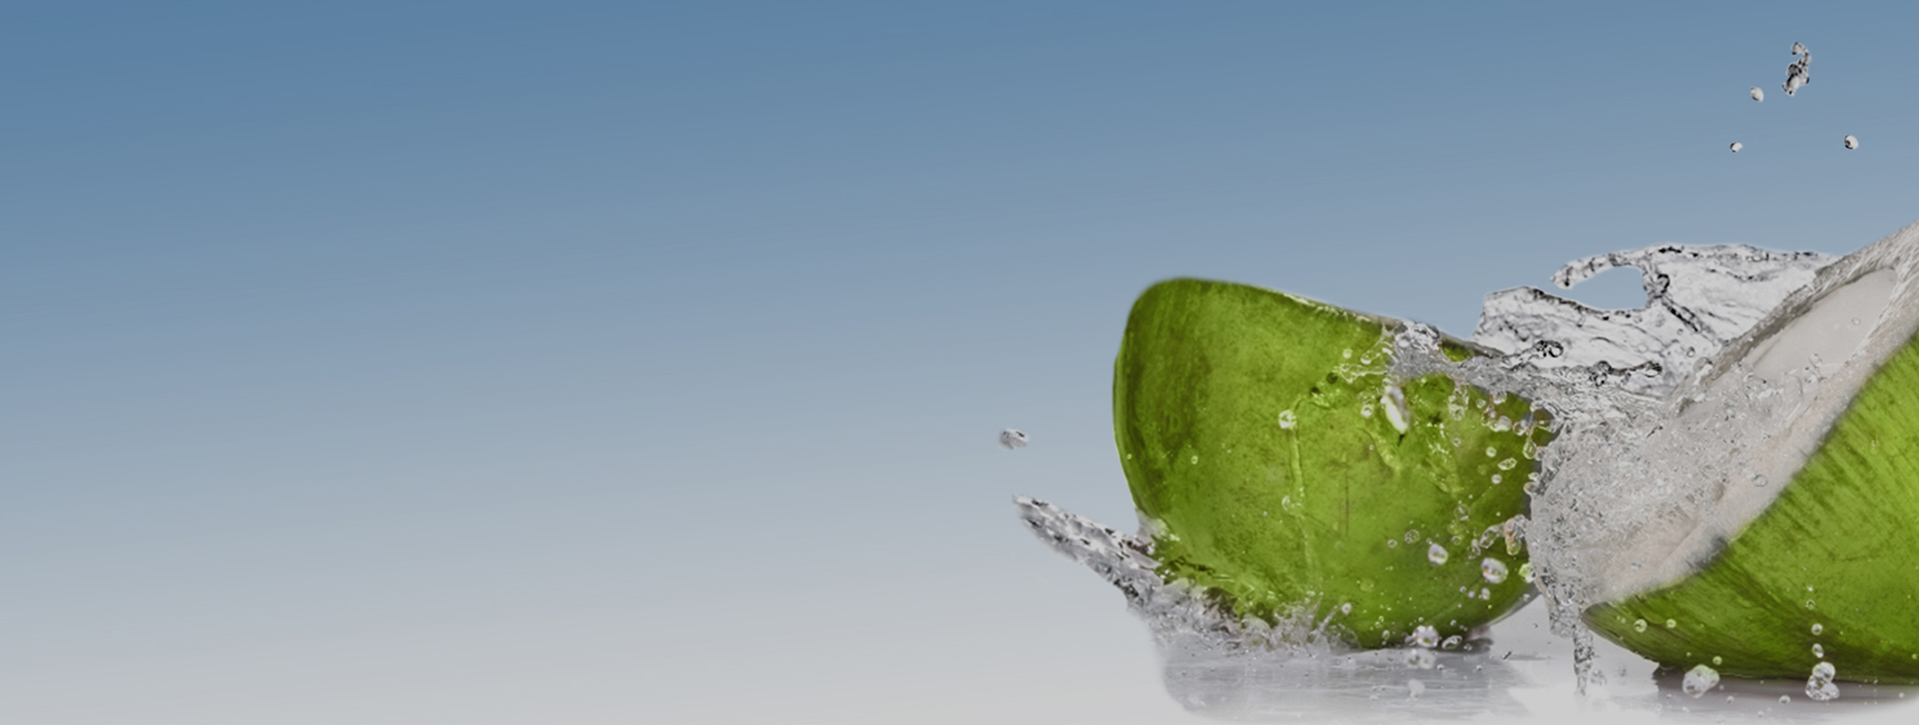 Zico Coconut Water - Food and Beverage Public Relations Case Study � 5WPR